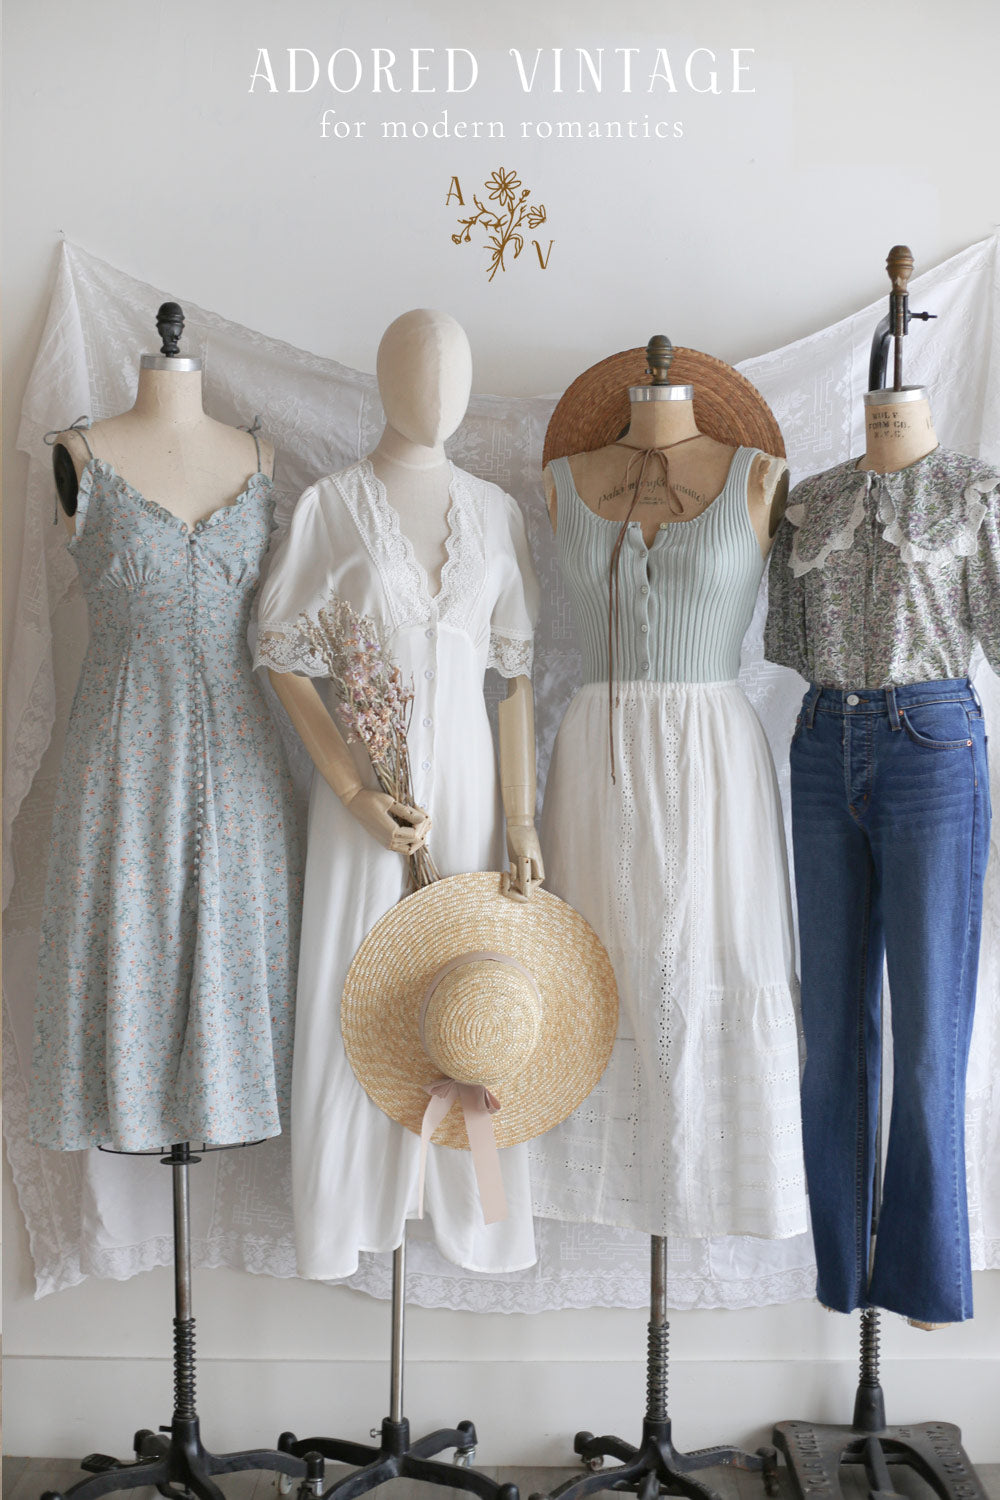 Adored Vintage Timeless and Feminine Clothing Inspired By Vintage